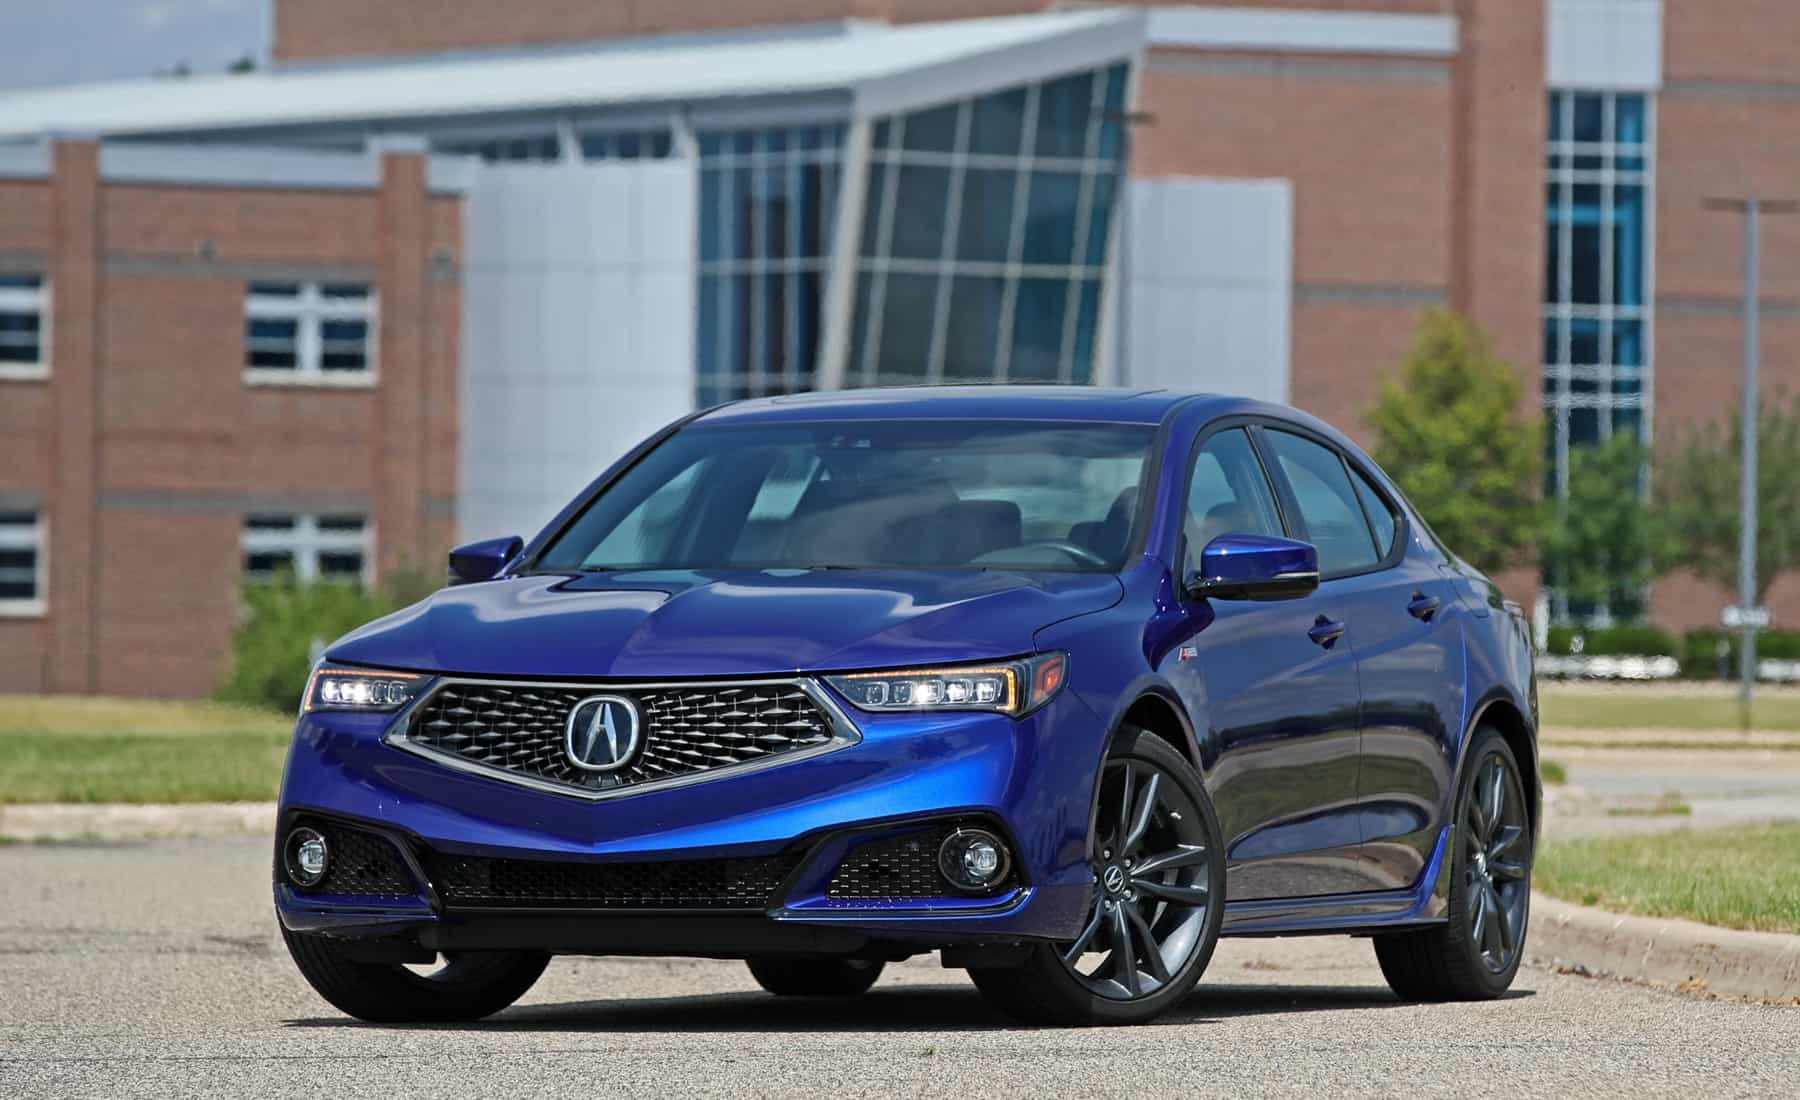 2018 Acura TLX Exterior Front (Photo 3 of 46)